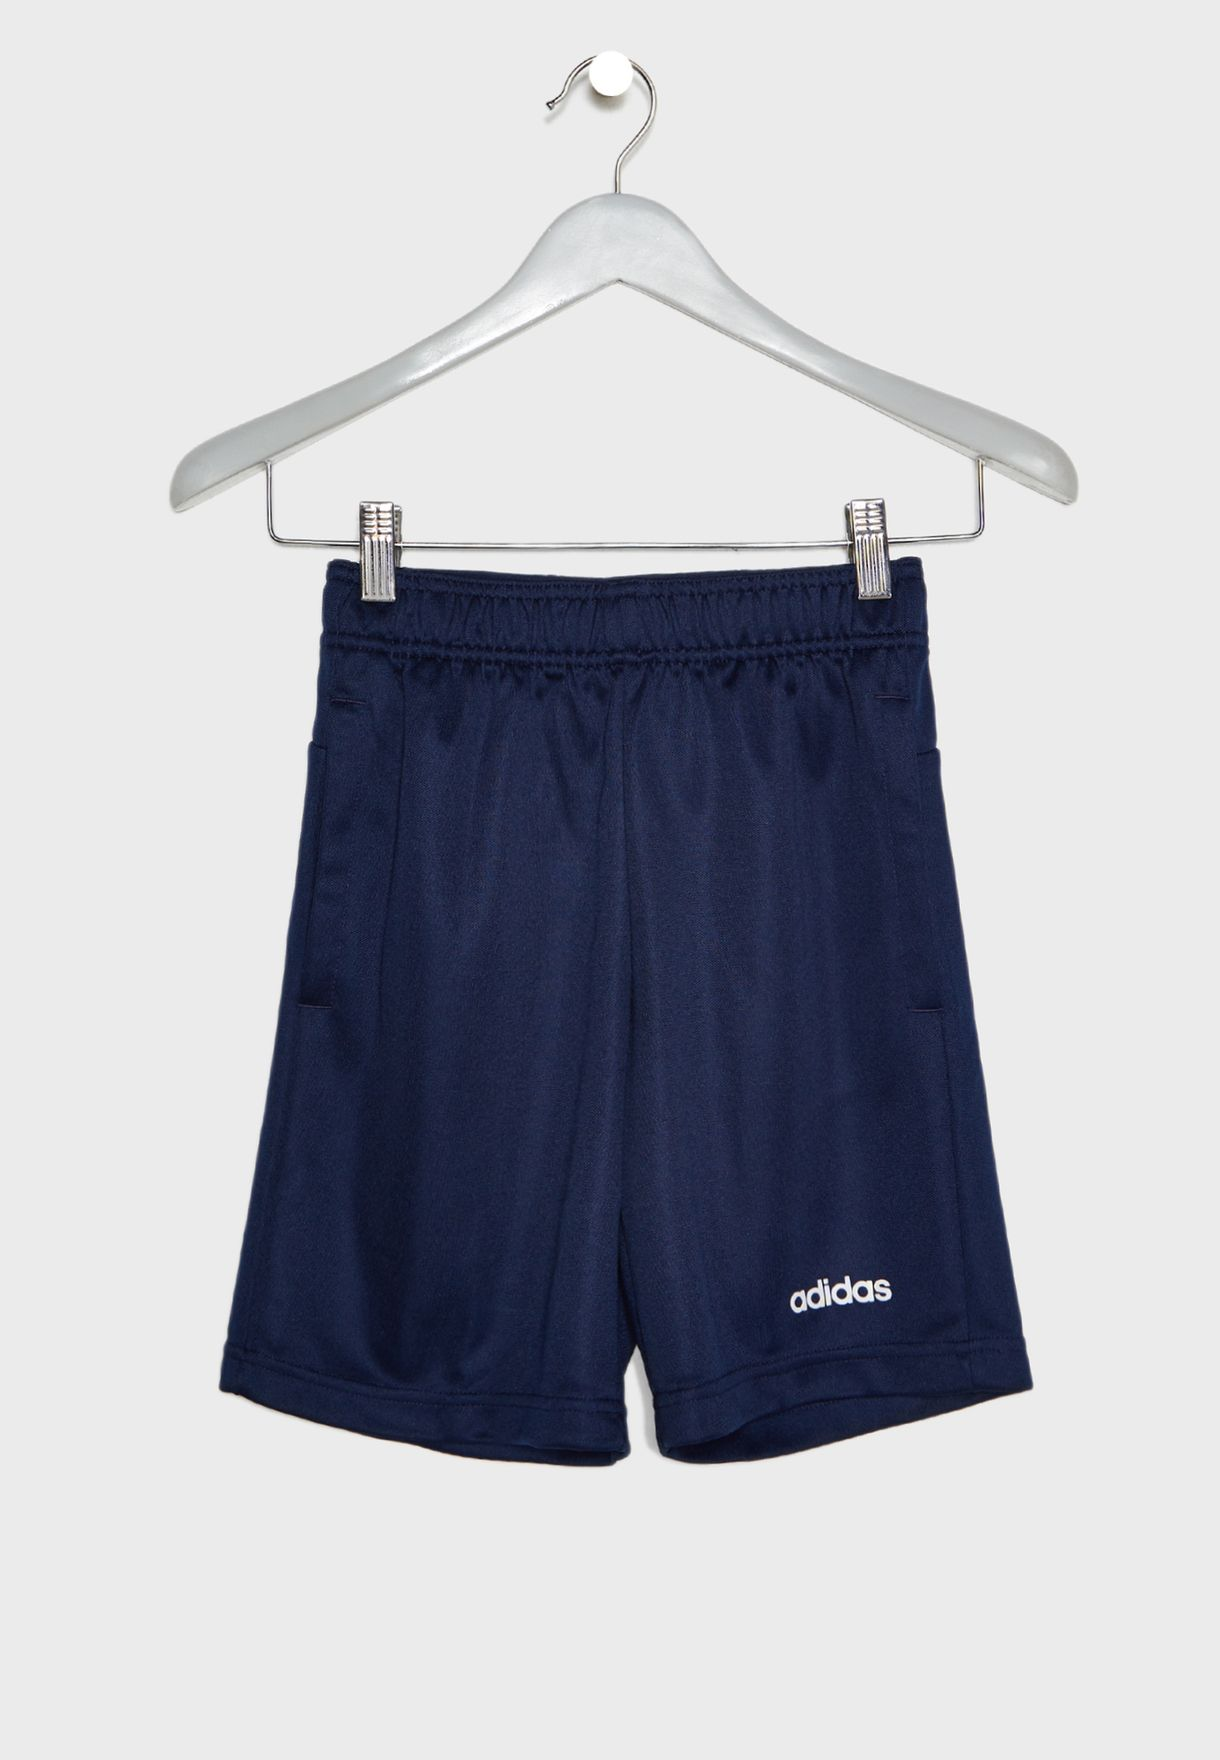 08a61e6aa3 Shop adidas navy Youth Linear Knit Shorts DV2924 for Kids in Bahrain ...